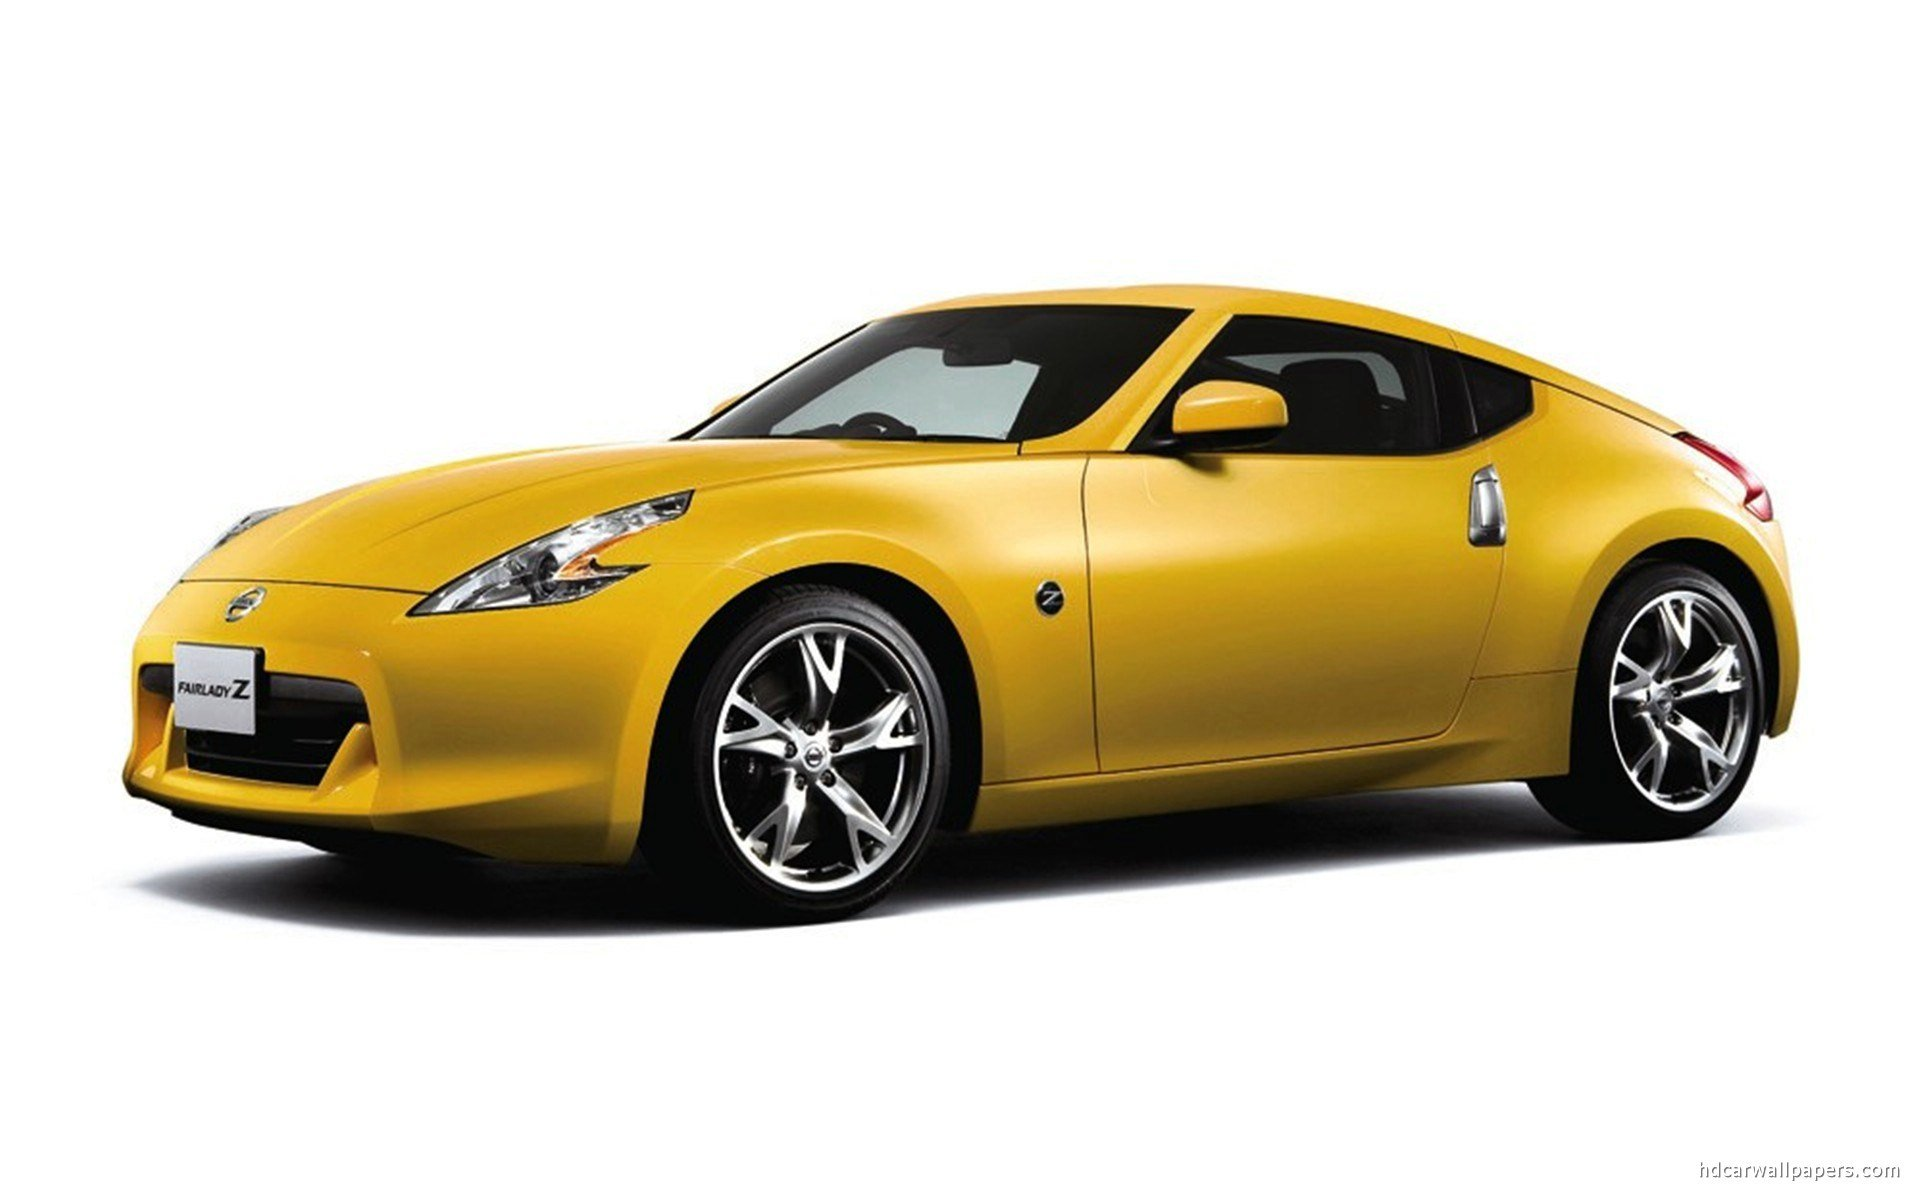 Latest Nissan Fairlady Z Yellow Wallpaper Hd Car Wallpapers Free Download